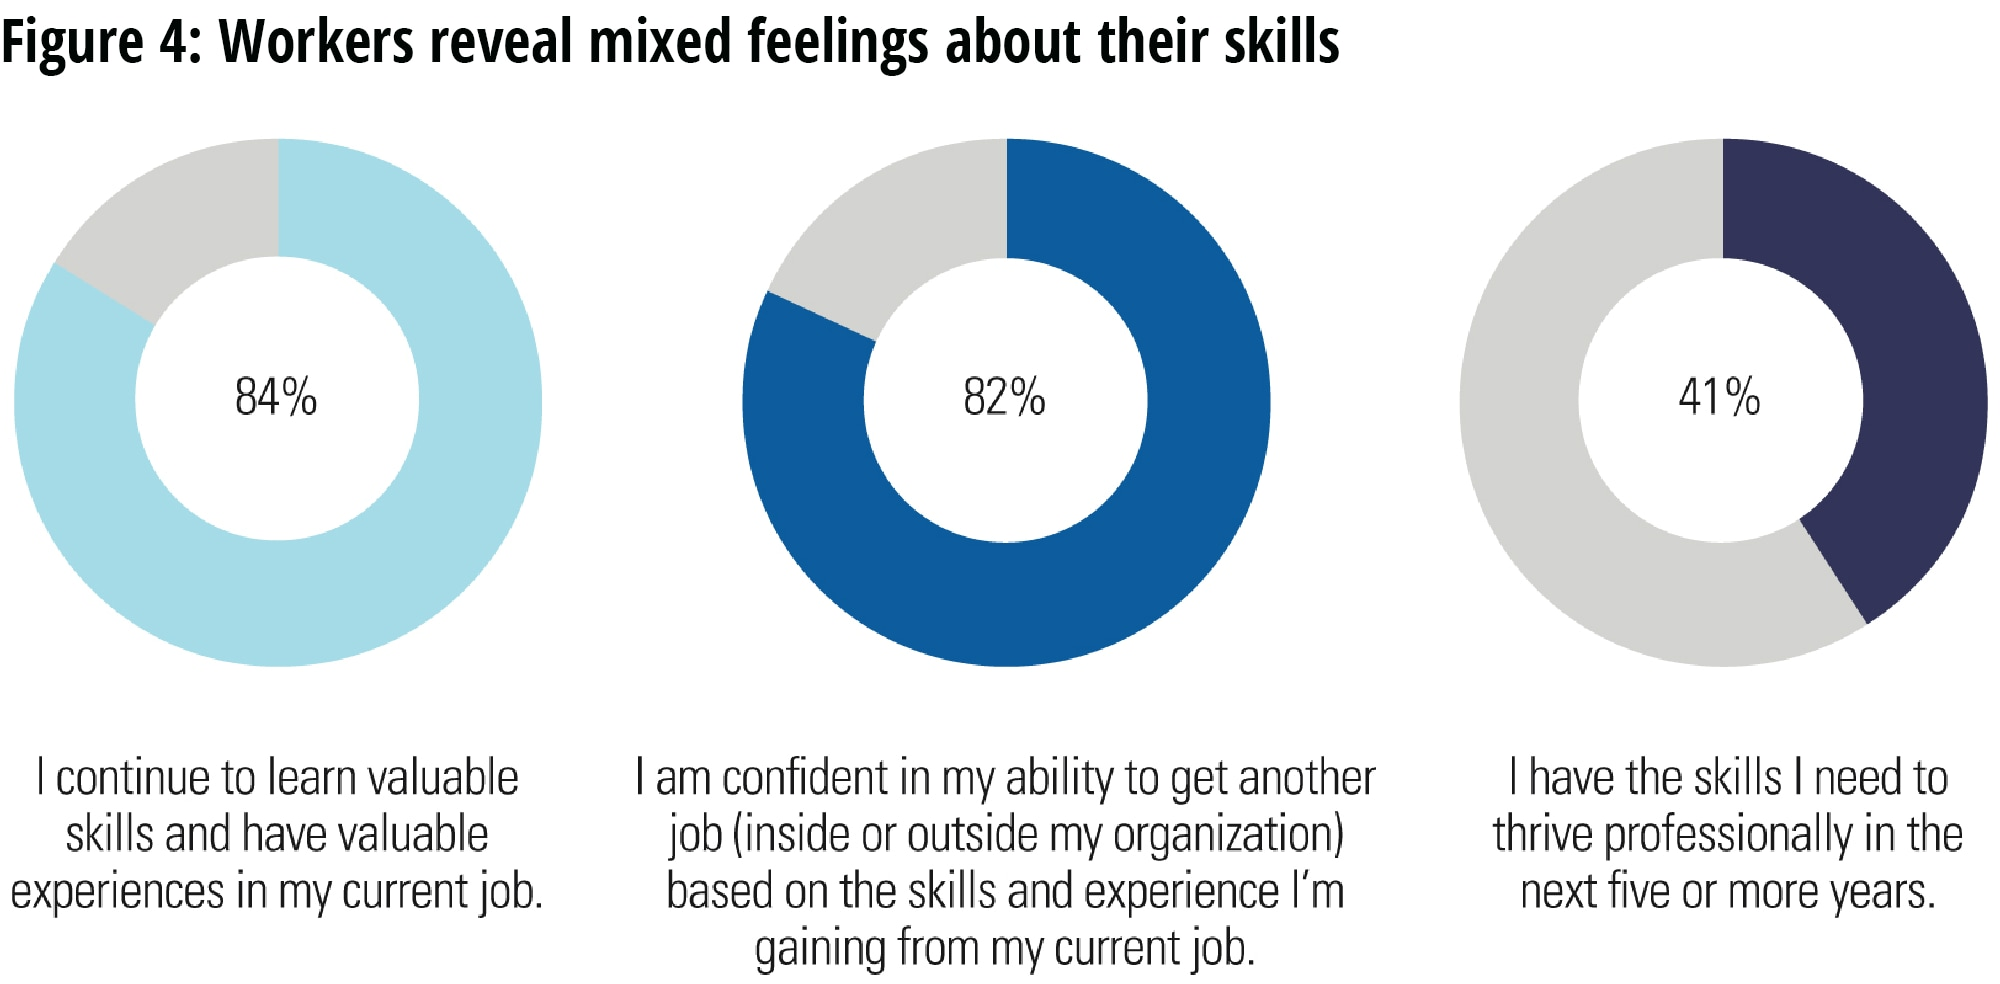 Workers reveal mixed feelings about their skills